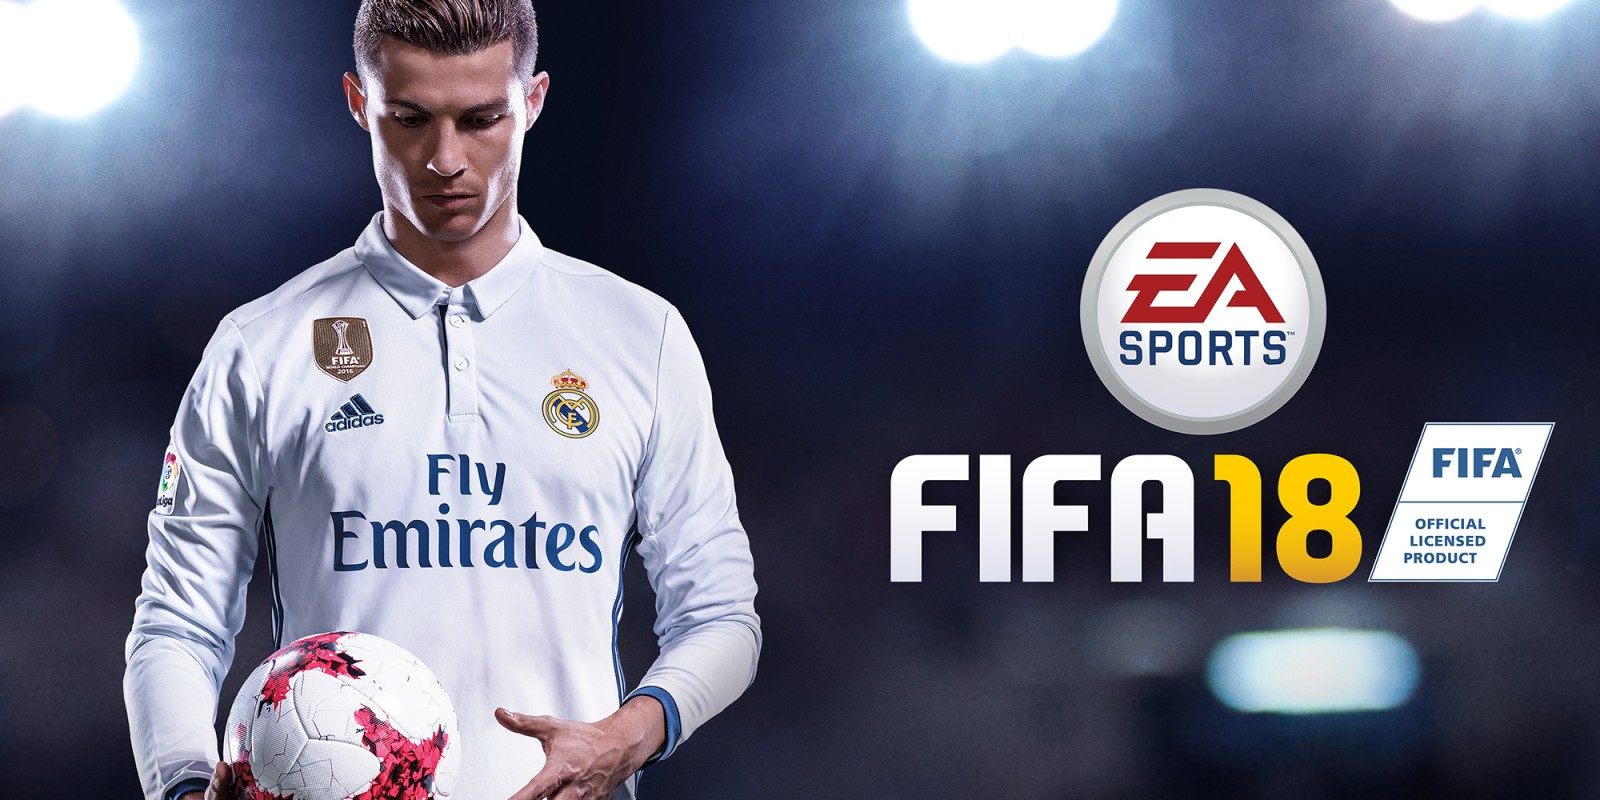 Fifa 18 Updated Fact Sheet On Game Modes Gonintendo Nintendo Switch With Ultimate Team Career Mode Local Seasons Online Kick Off And More Ea Sports Offers Fans Many In Depth